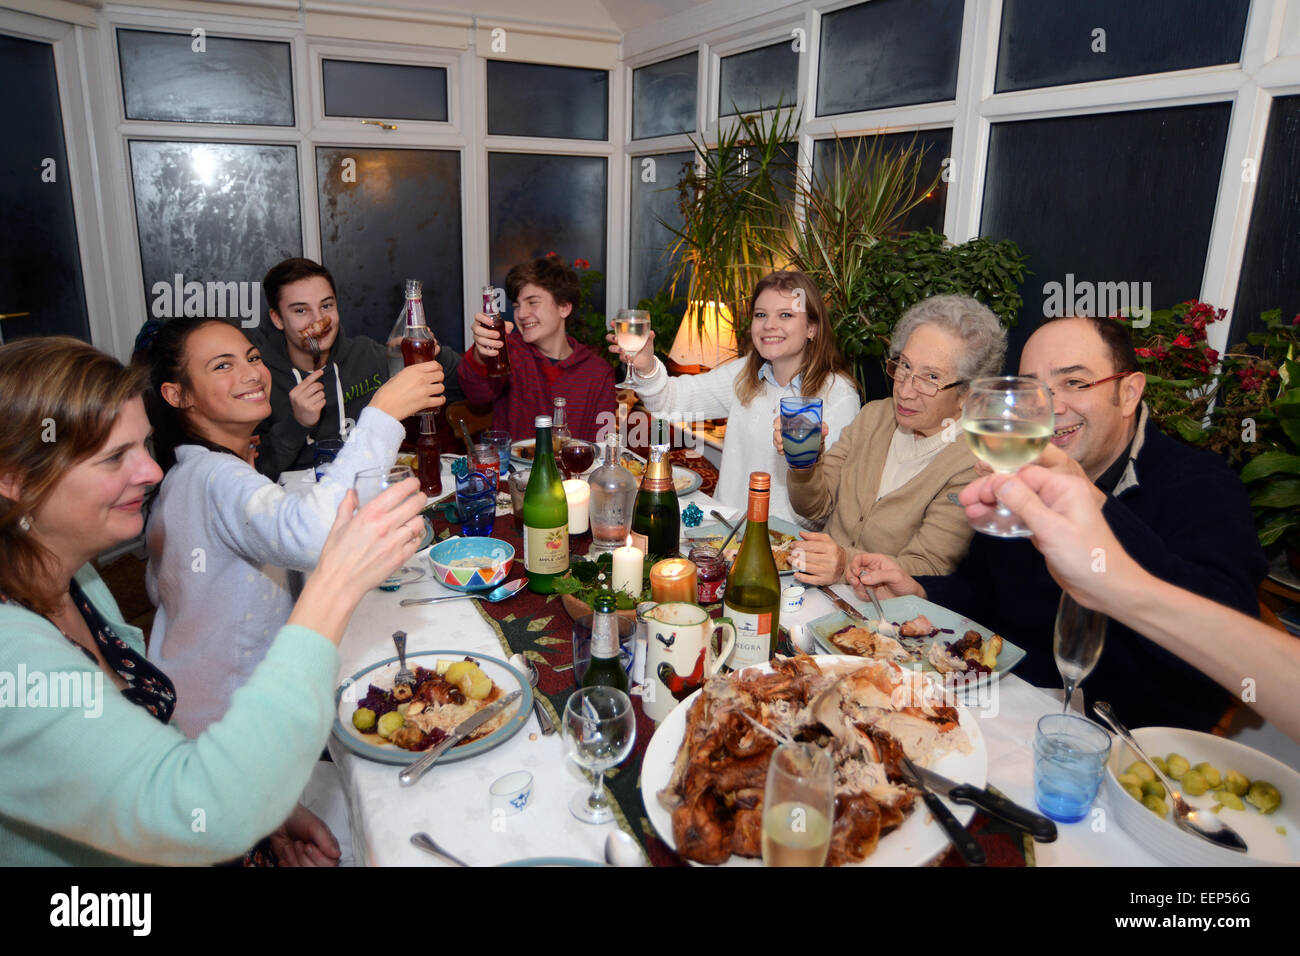 Family enjoy Christmas dinner with all the generations. - Stock Image